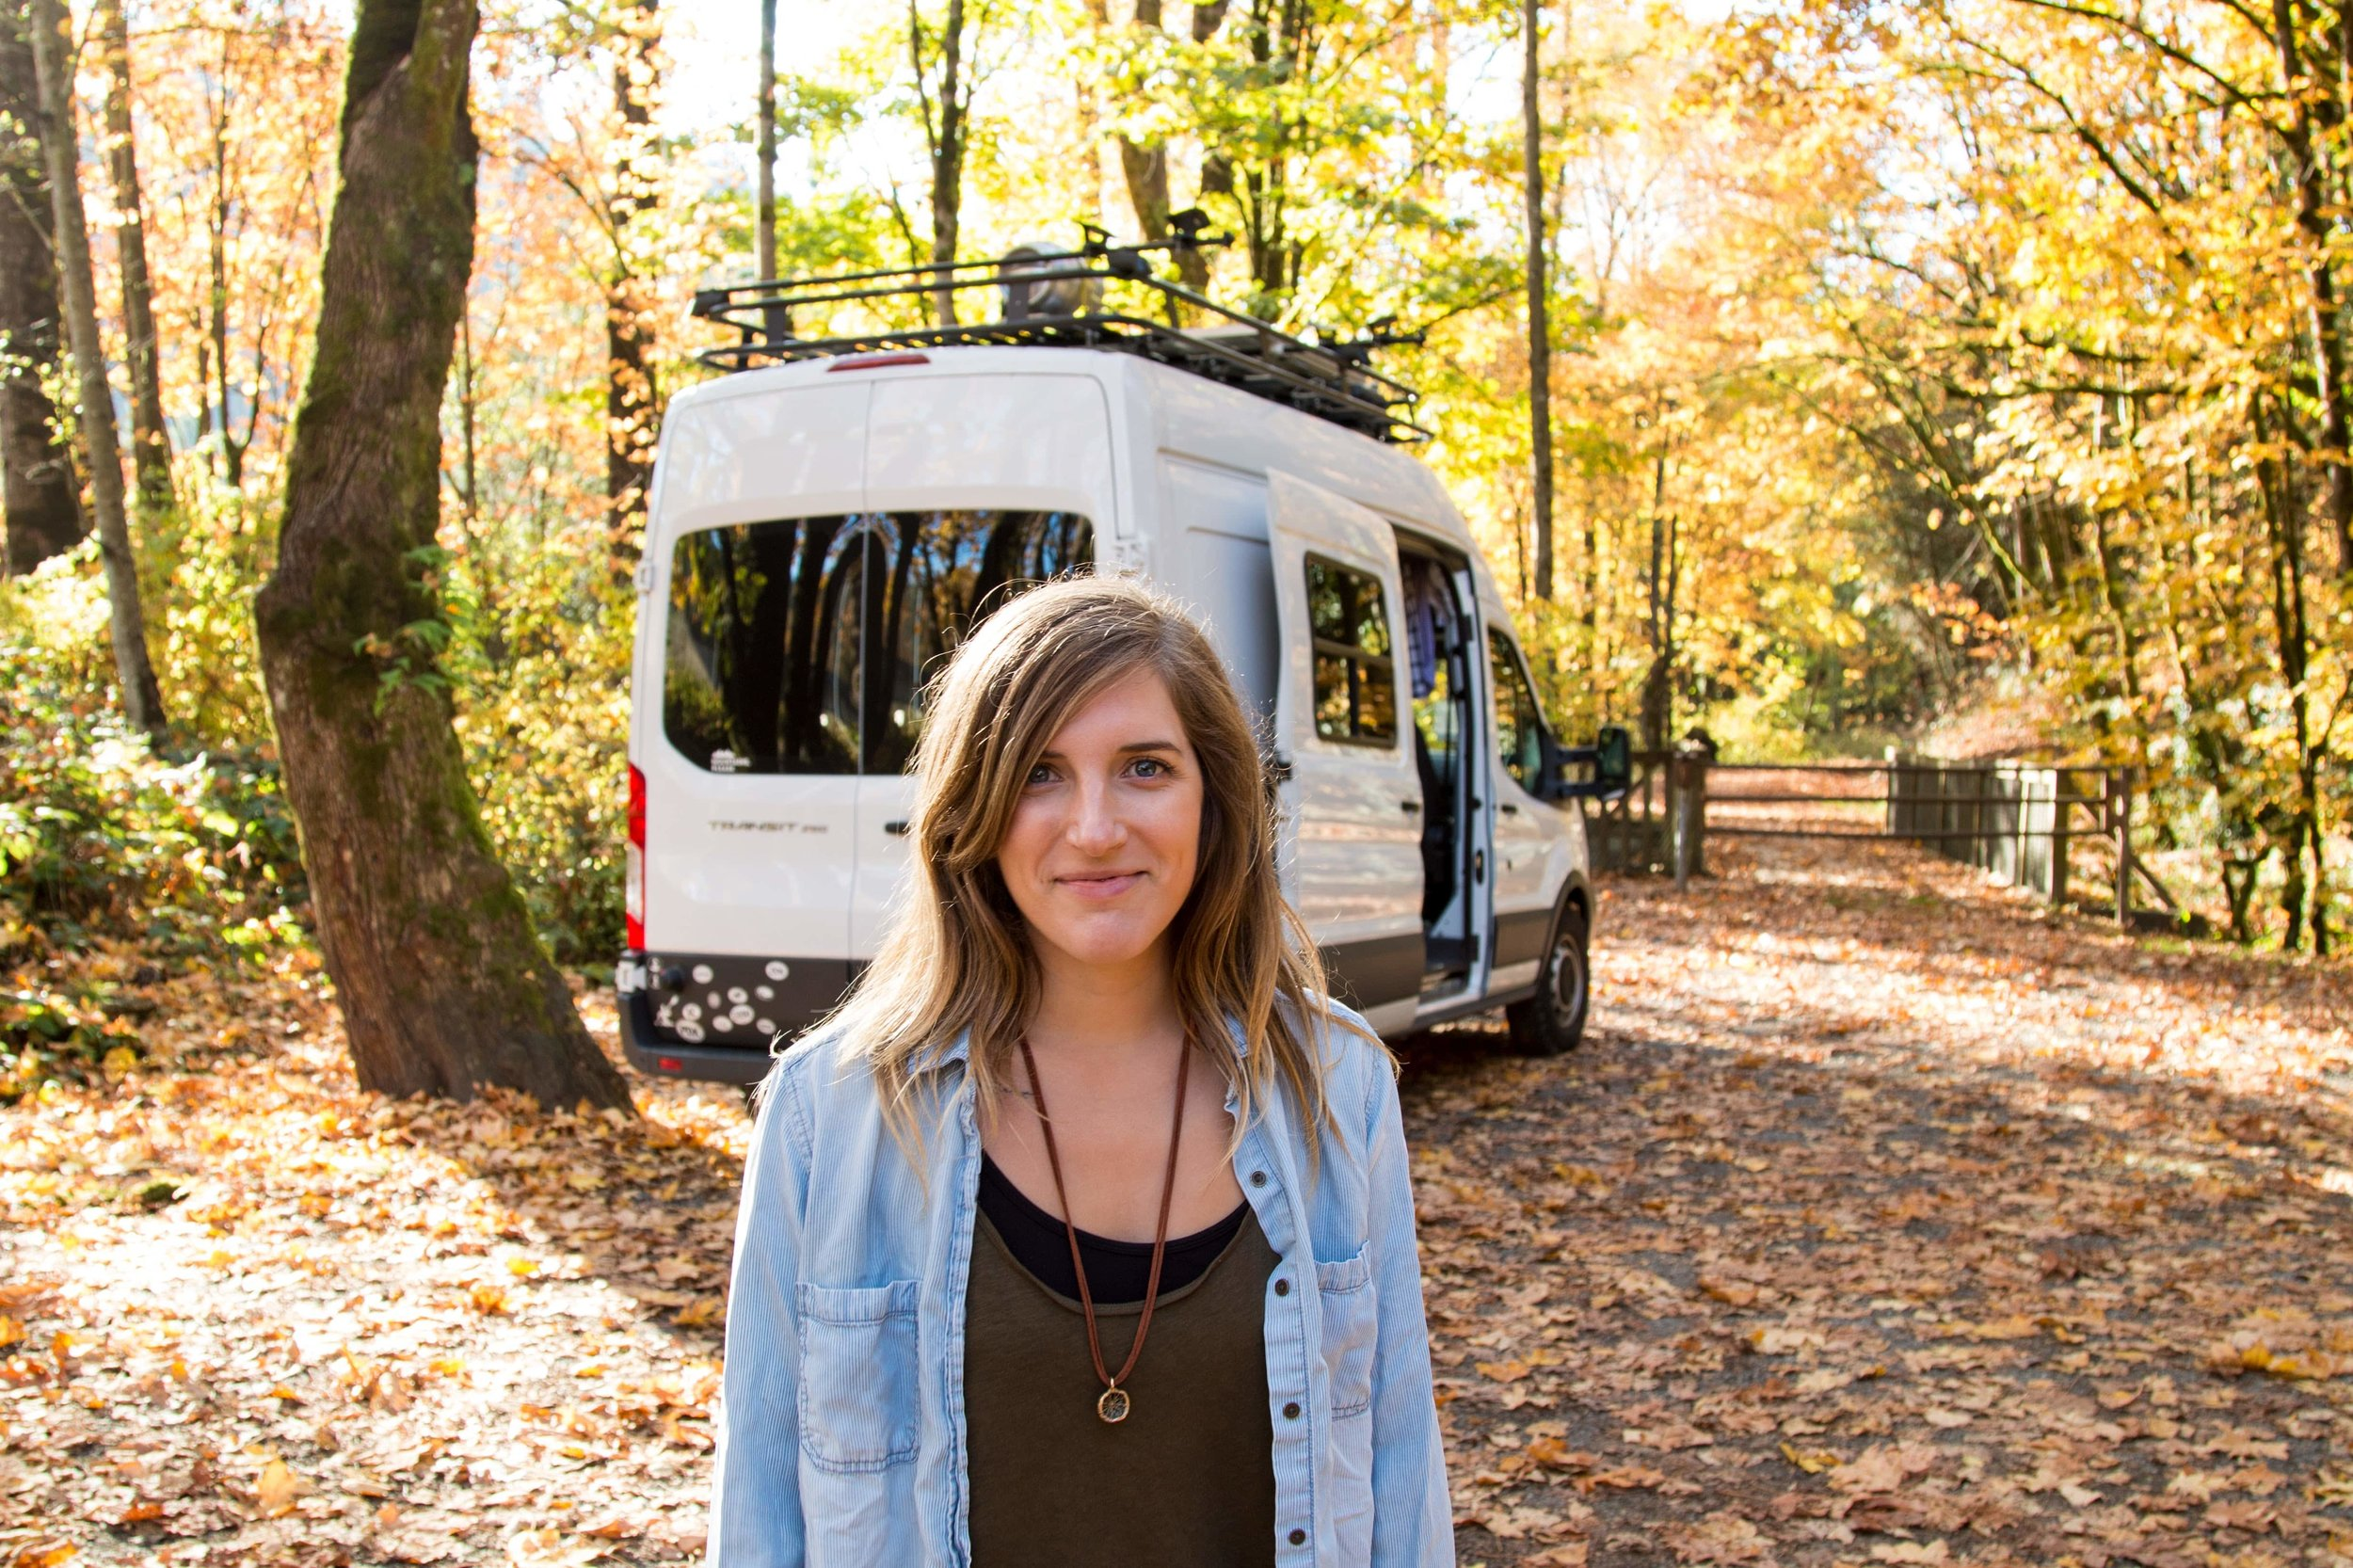 Laura / Podcast Host - Laura Hughes is a podcast host, photographer, writer, and full time traveler living on the road in her Ford Transit camper van.Here, she talks about how human stories influence her creativity, and why saying